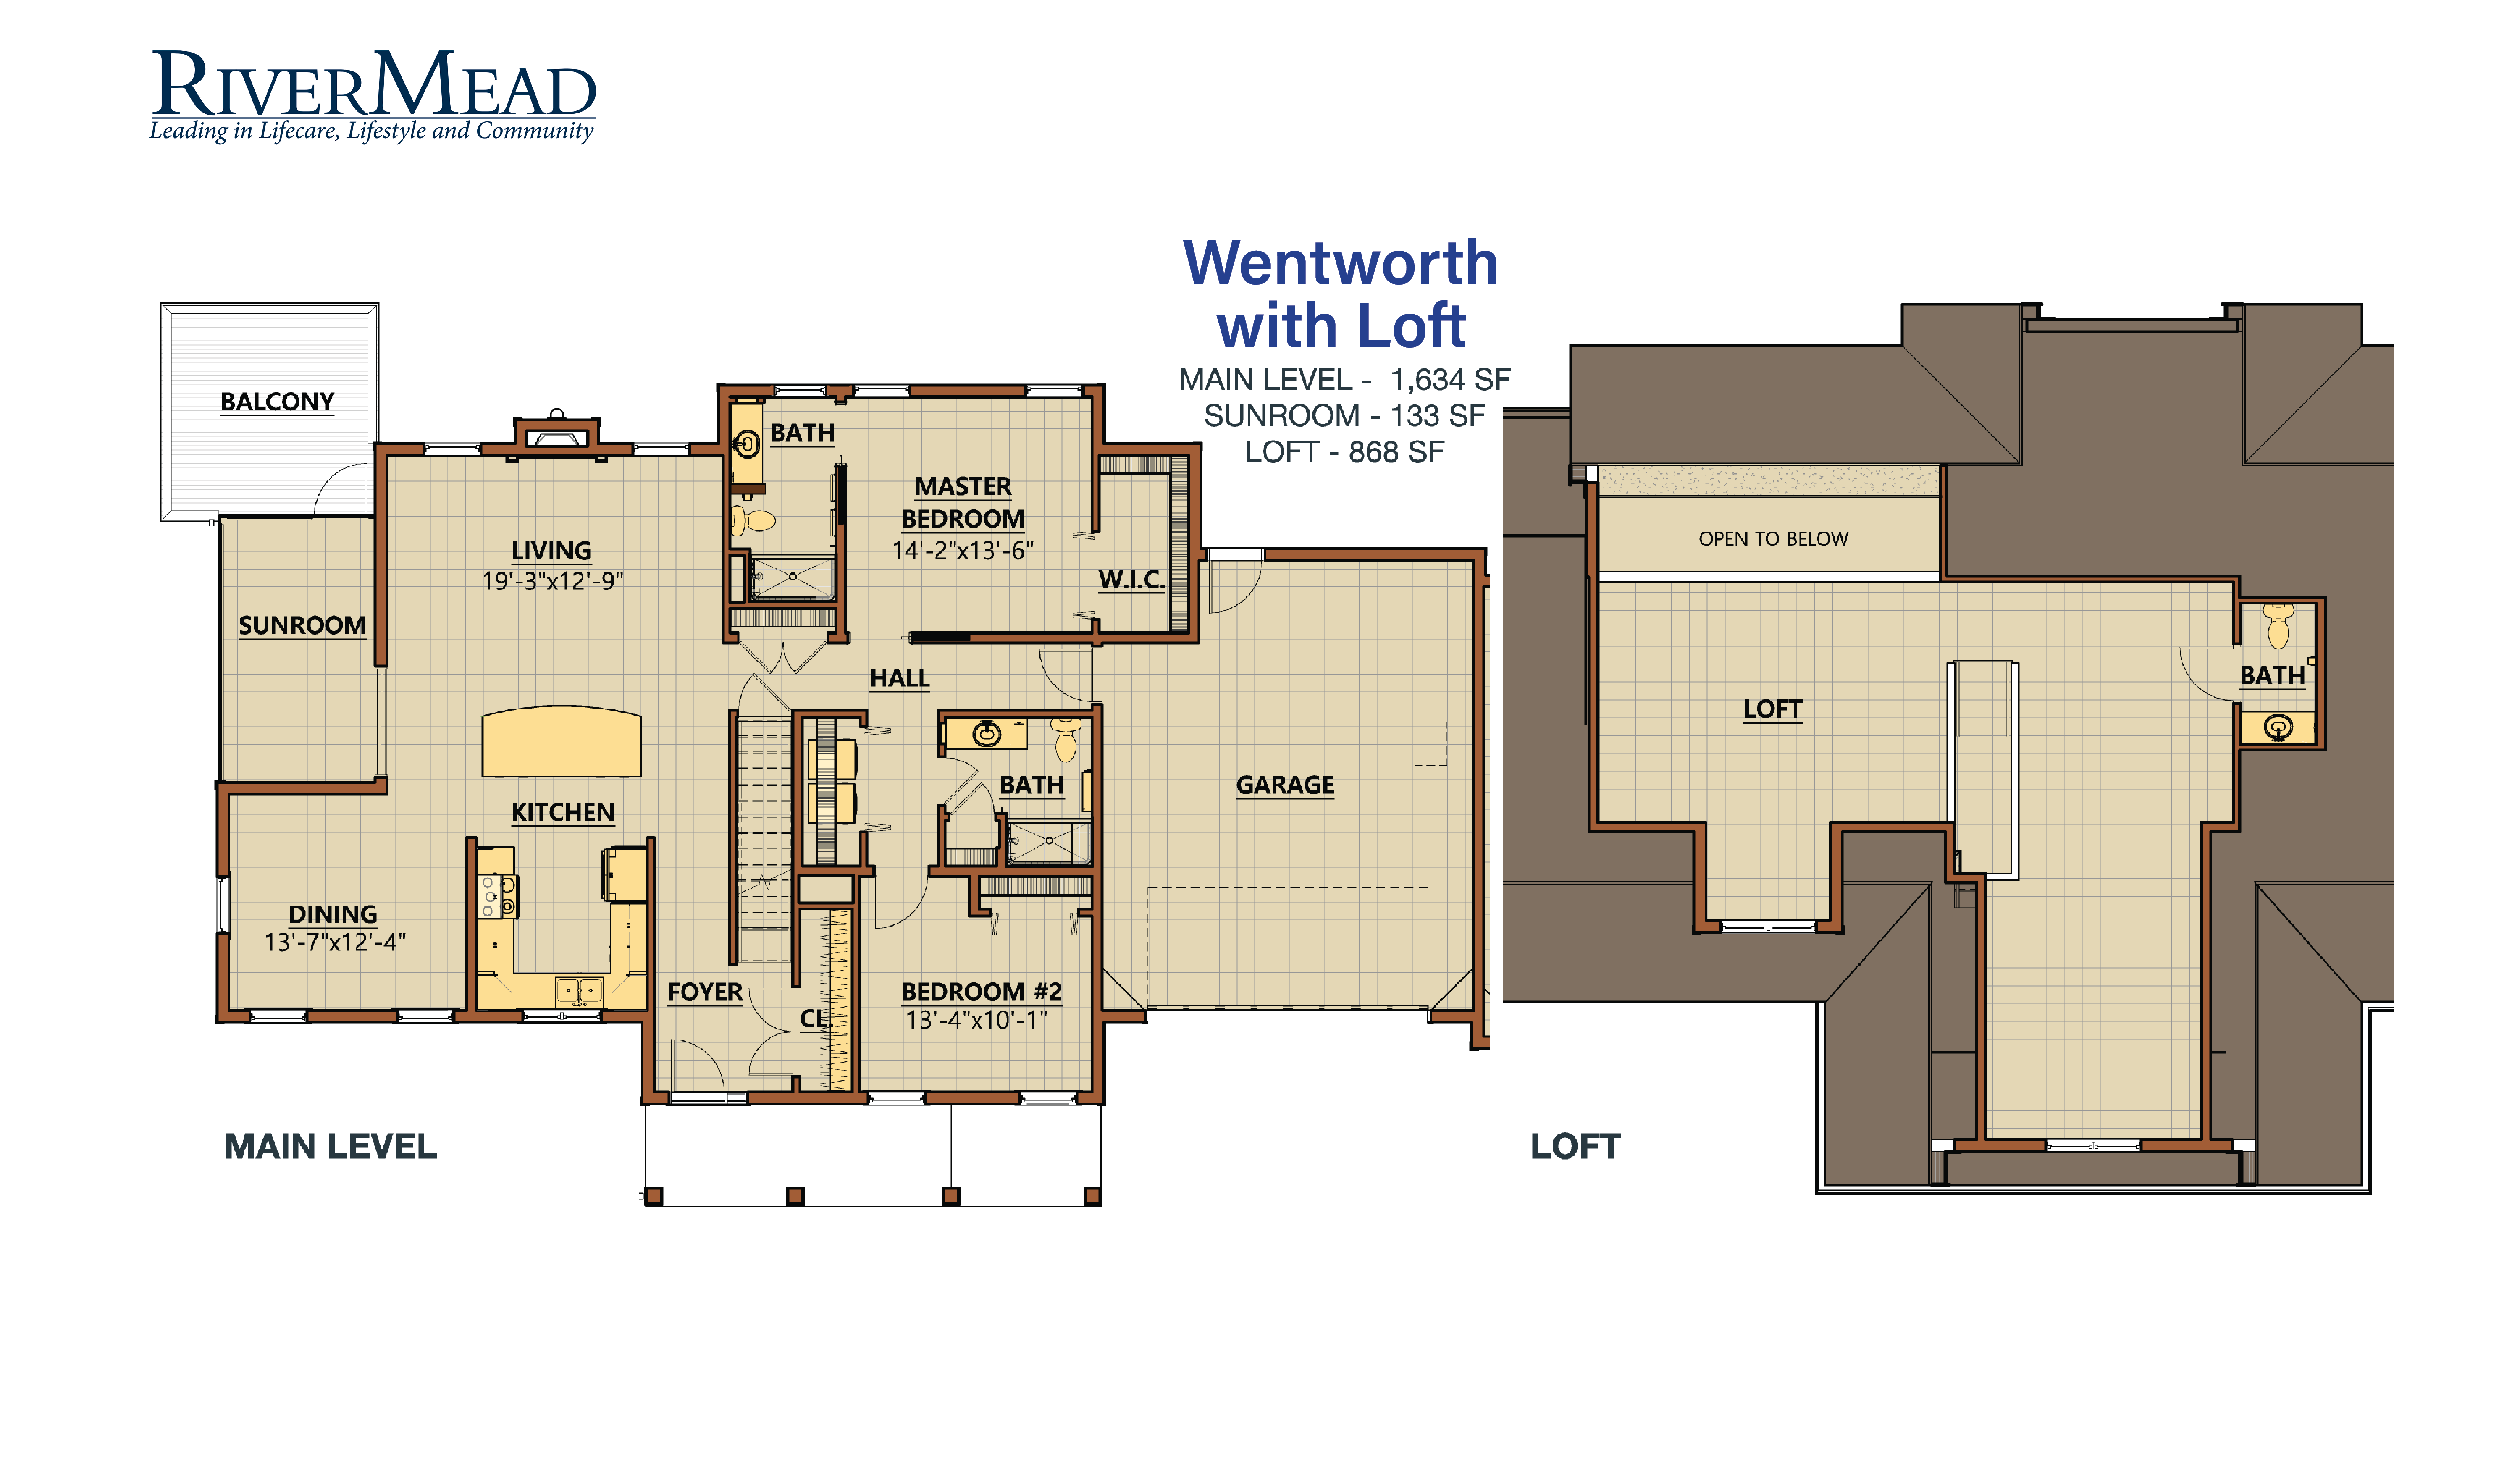 Site WENTWORTH with Loft